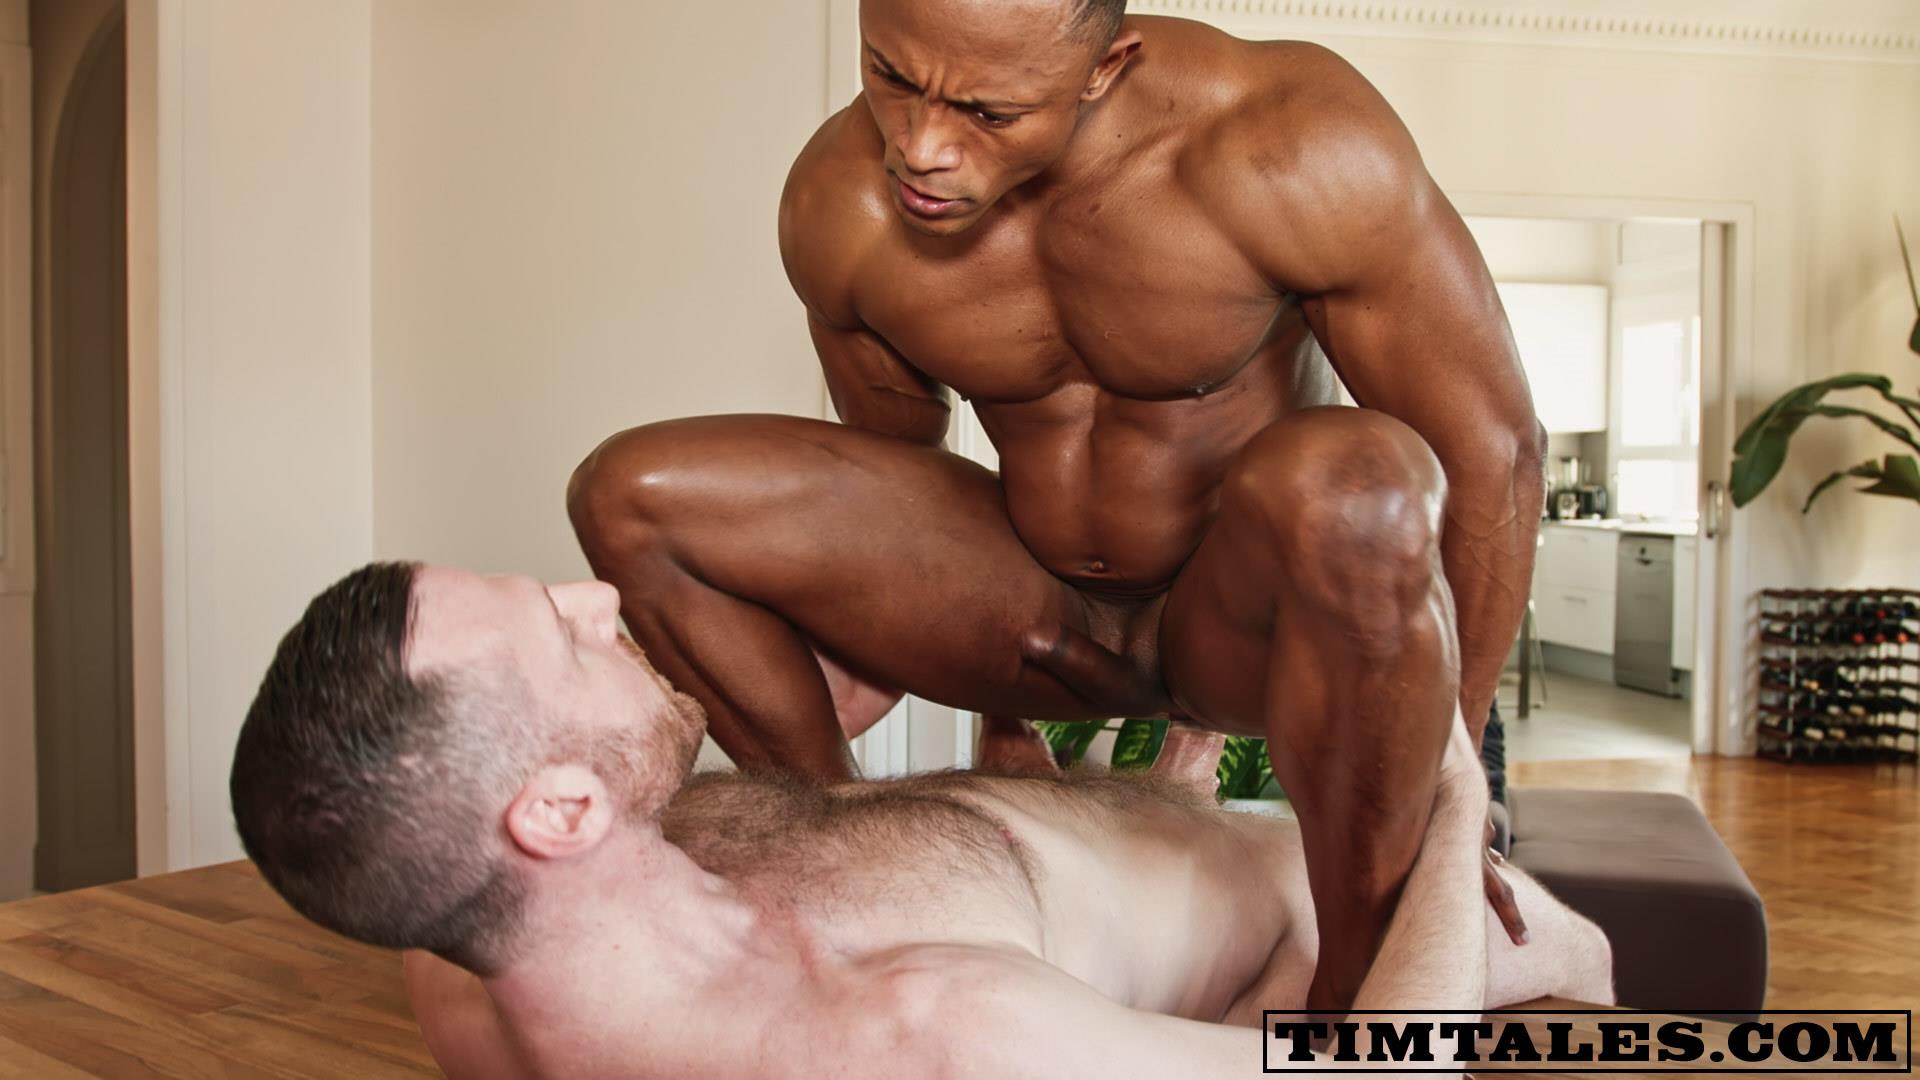 Tim-Tales-Santi-and-Tim-Kruger-Big-Uncut-Ginger-Cock-Fucking-Video-11 TimTales:  Santi Gets Fucked By Tim Kruger's Huge Uncut Cock